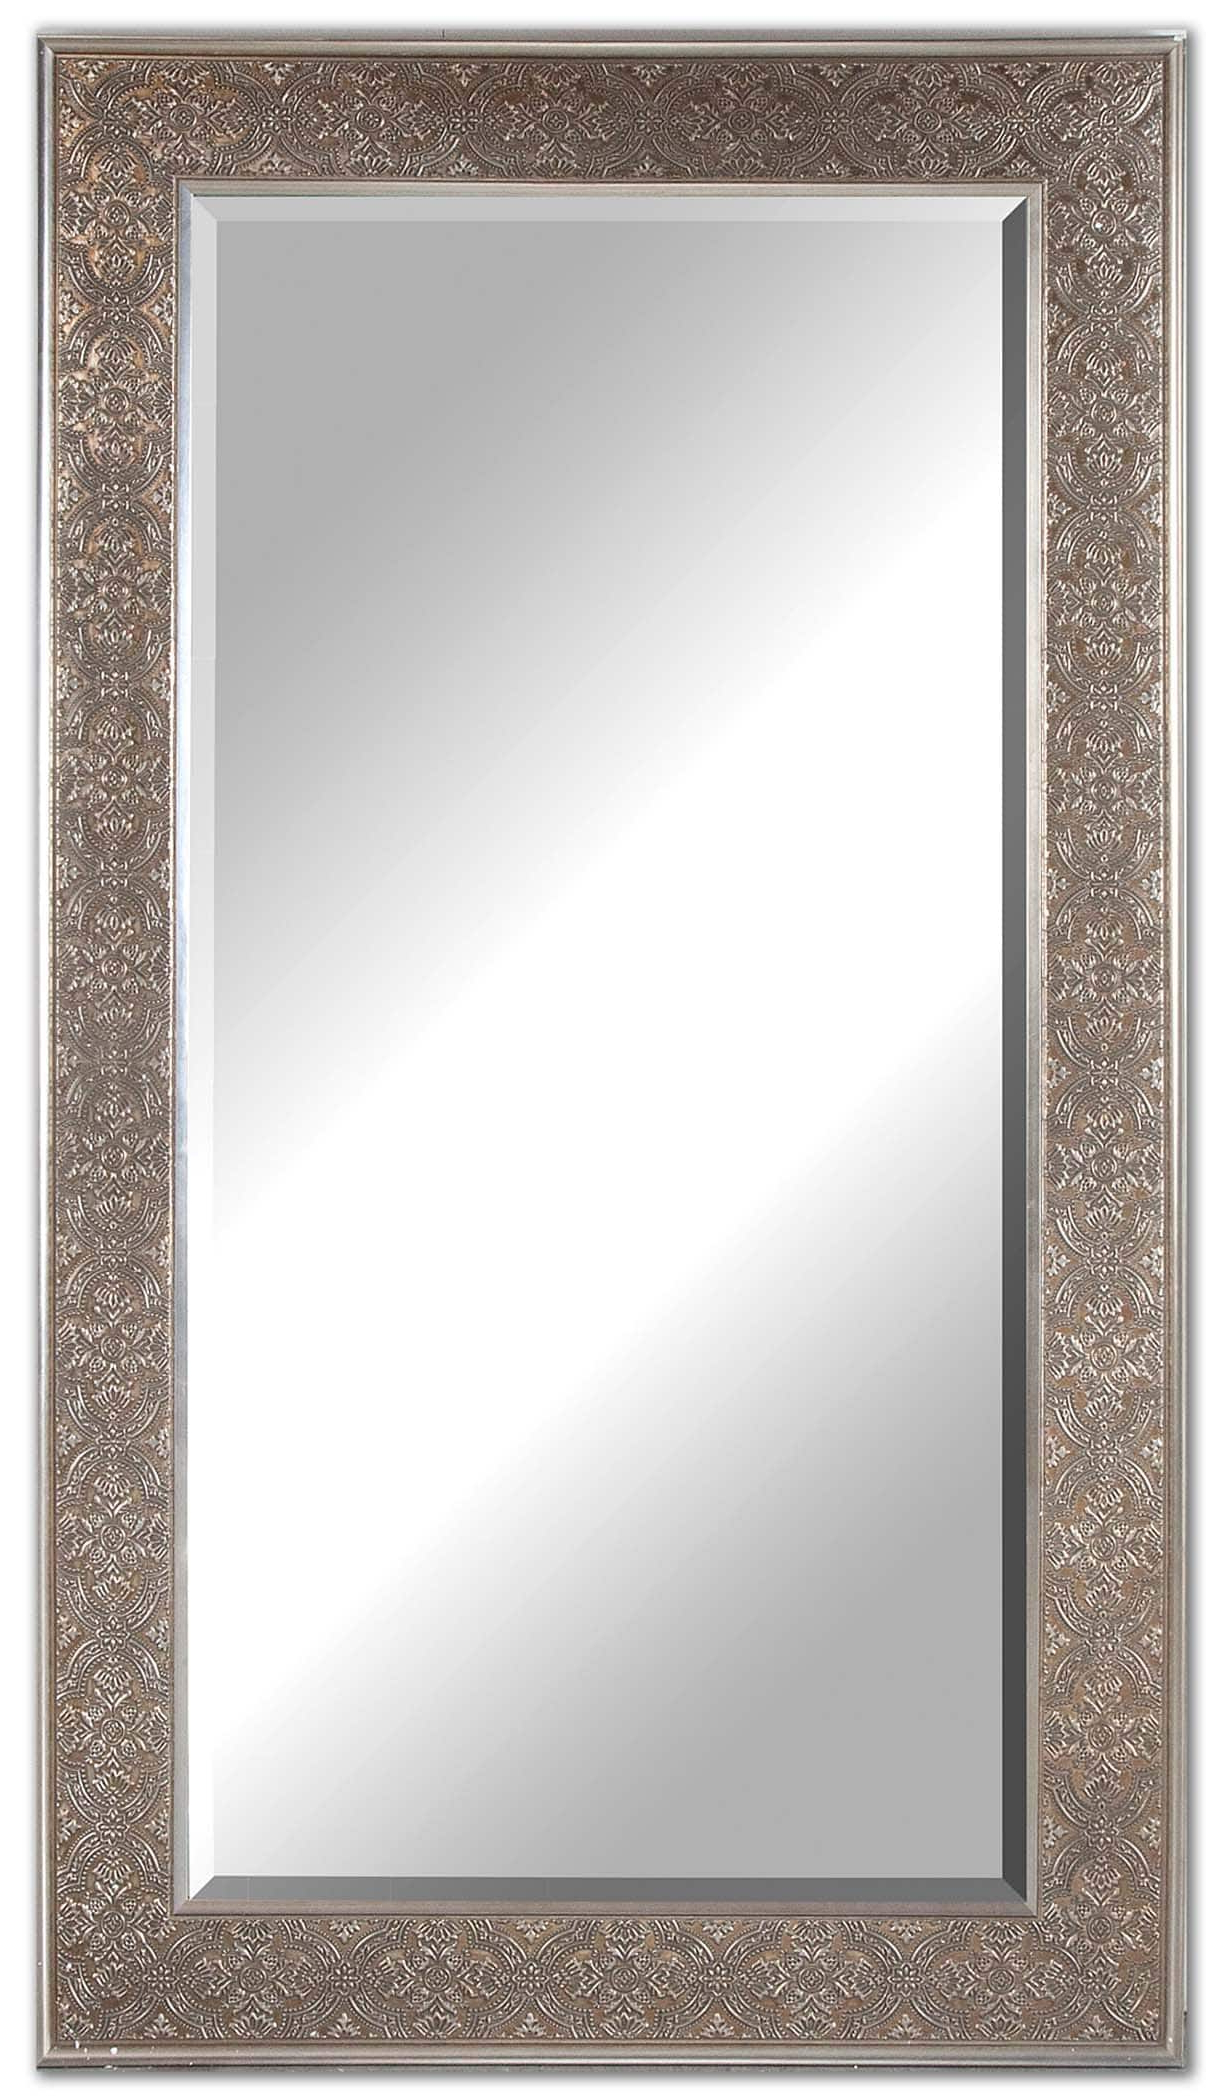 Antiqued Wall Mirrors Within Most Recently Released Villata Antique Silver Wall Mirroruttermost – 40″ X 70″ (View 9 of 20)